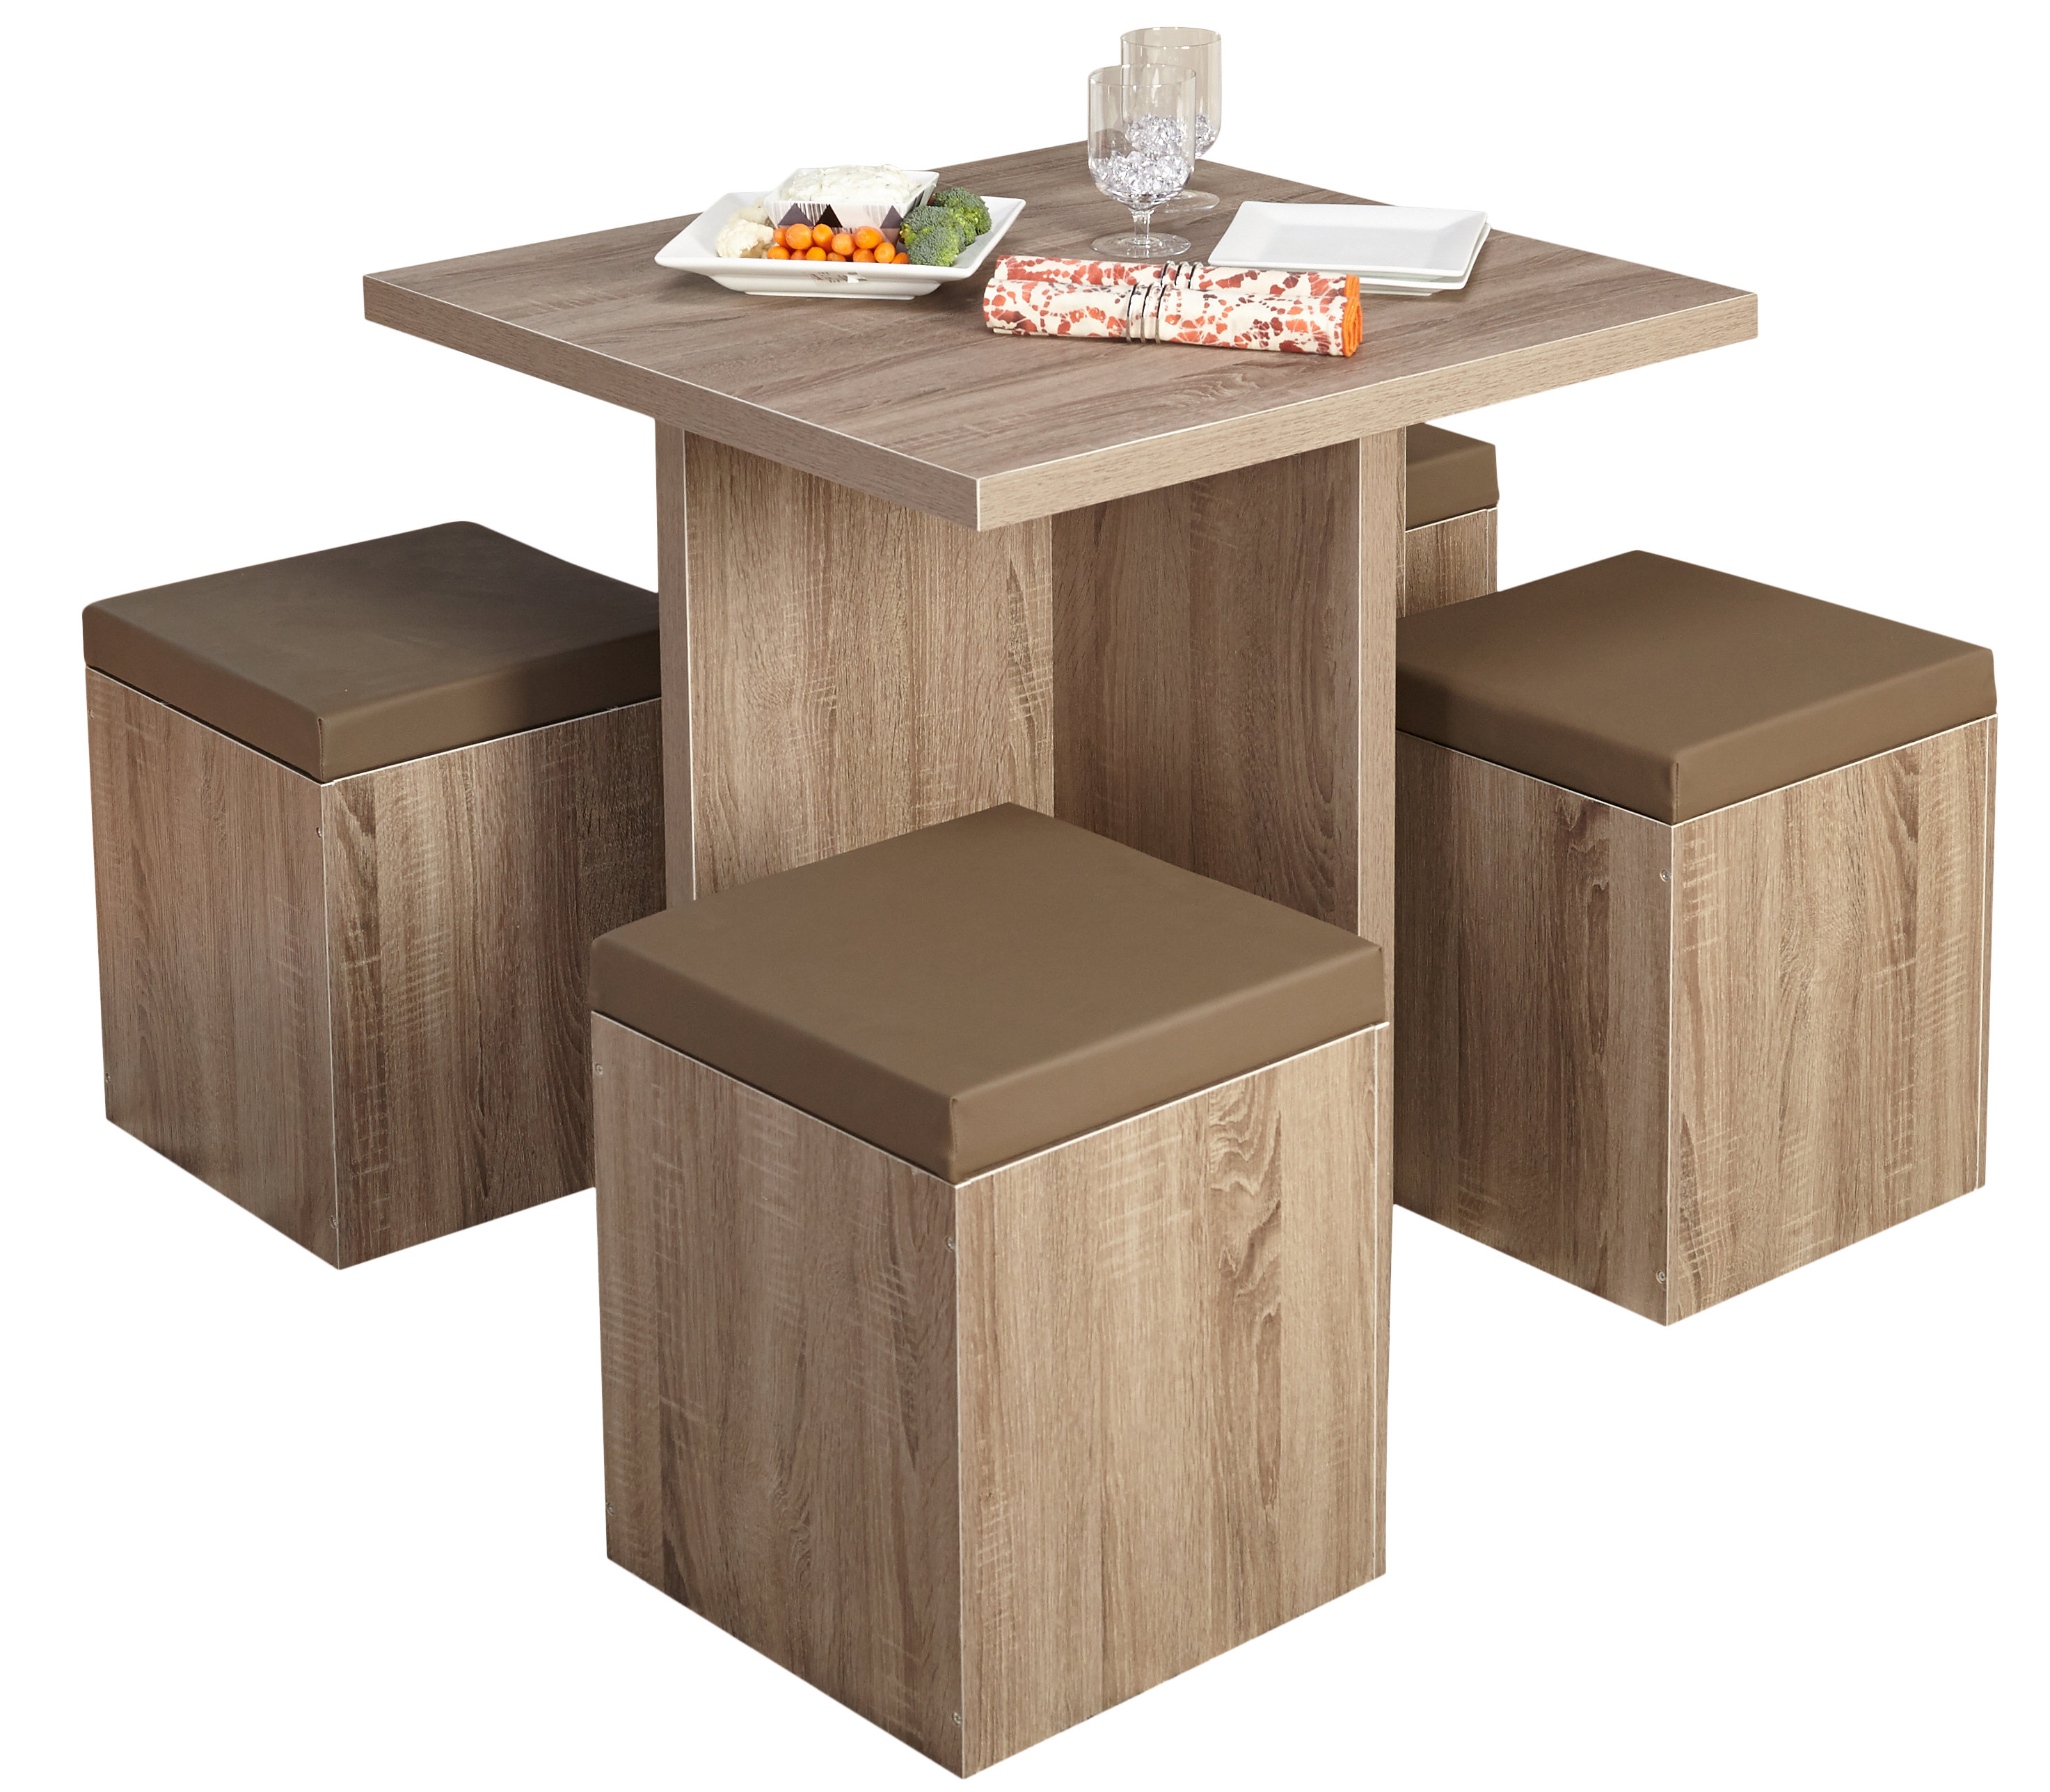 Ivy Bronx Badillo 5 Piece Dining Set In Most Up To Date Travon 5 Piece Dining Sets (View 18 of 20)